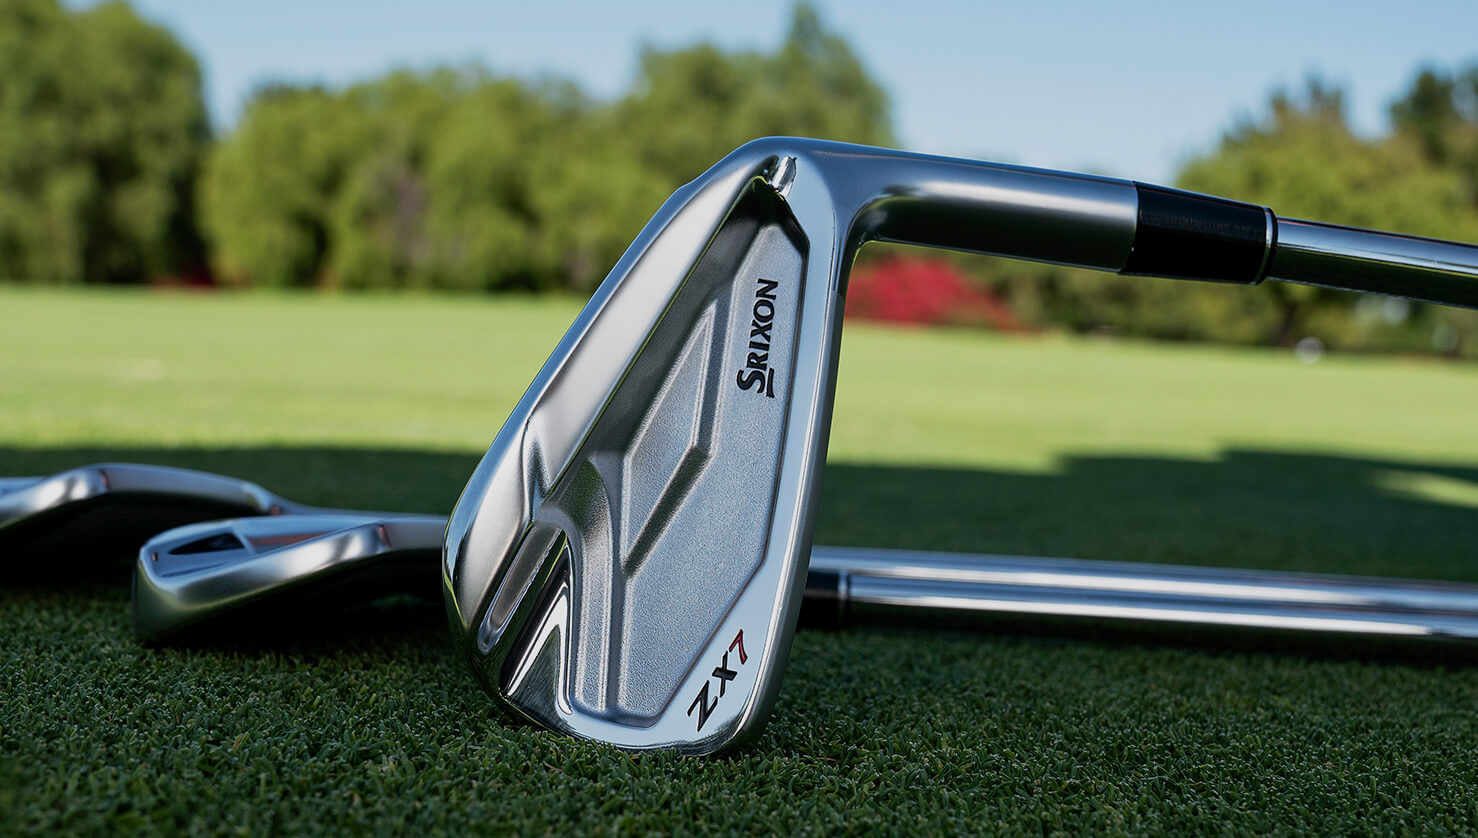 ZX7 Irons